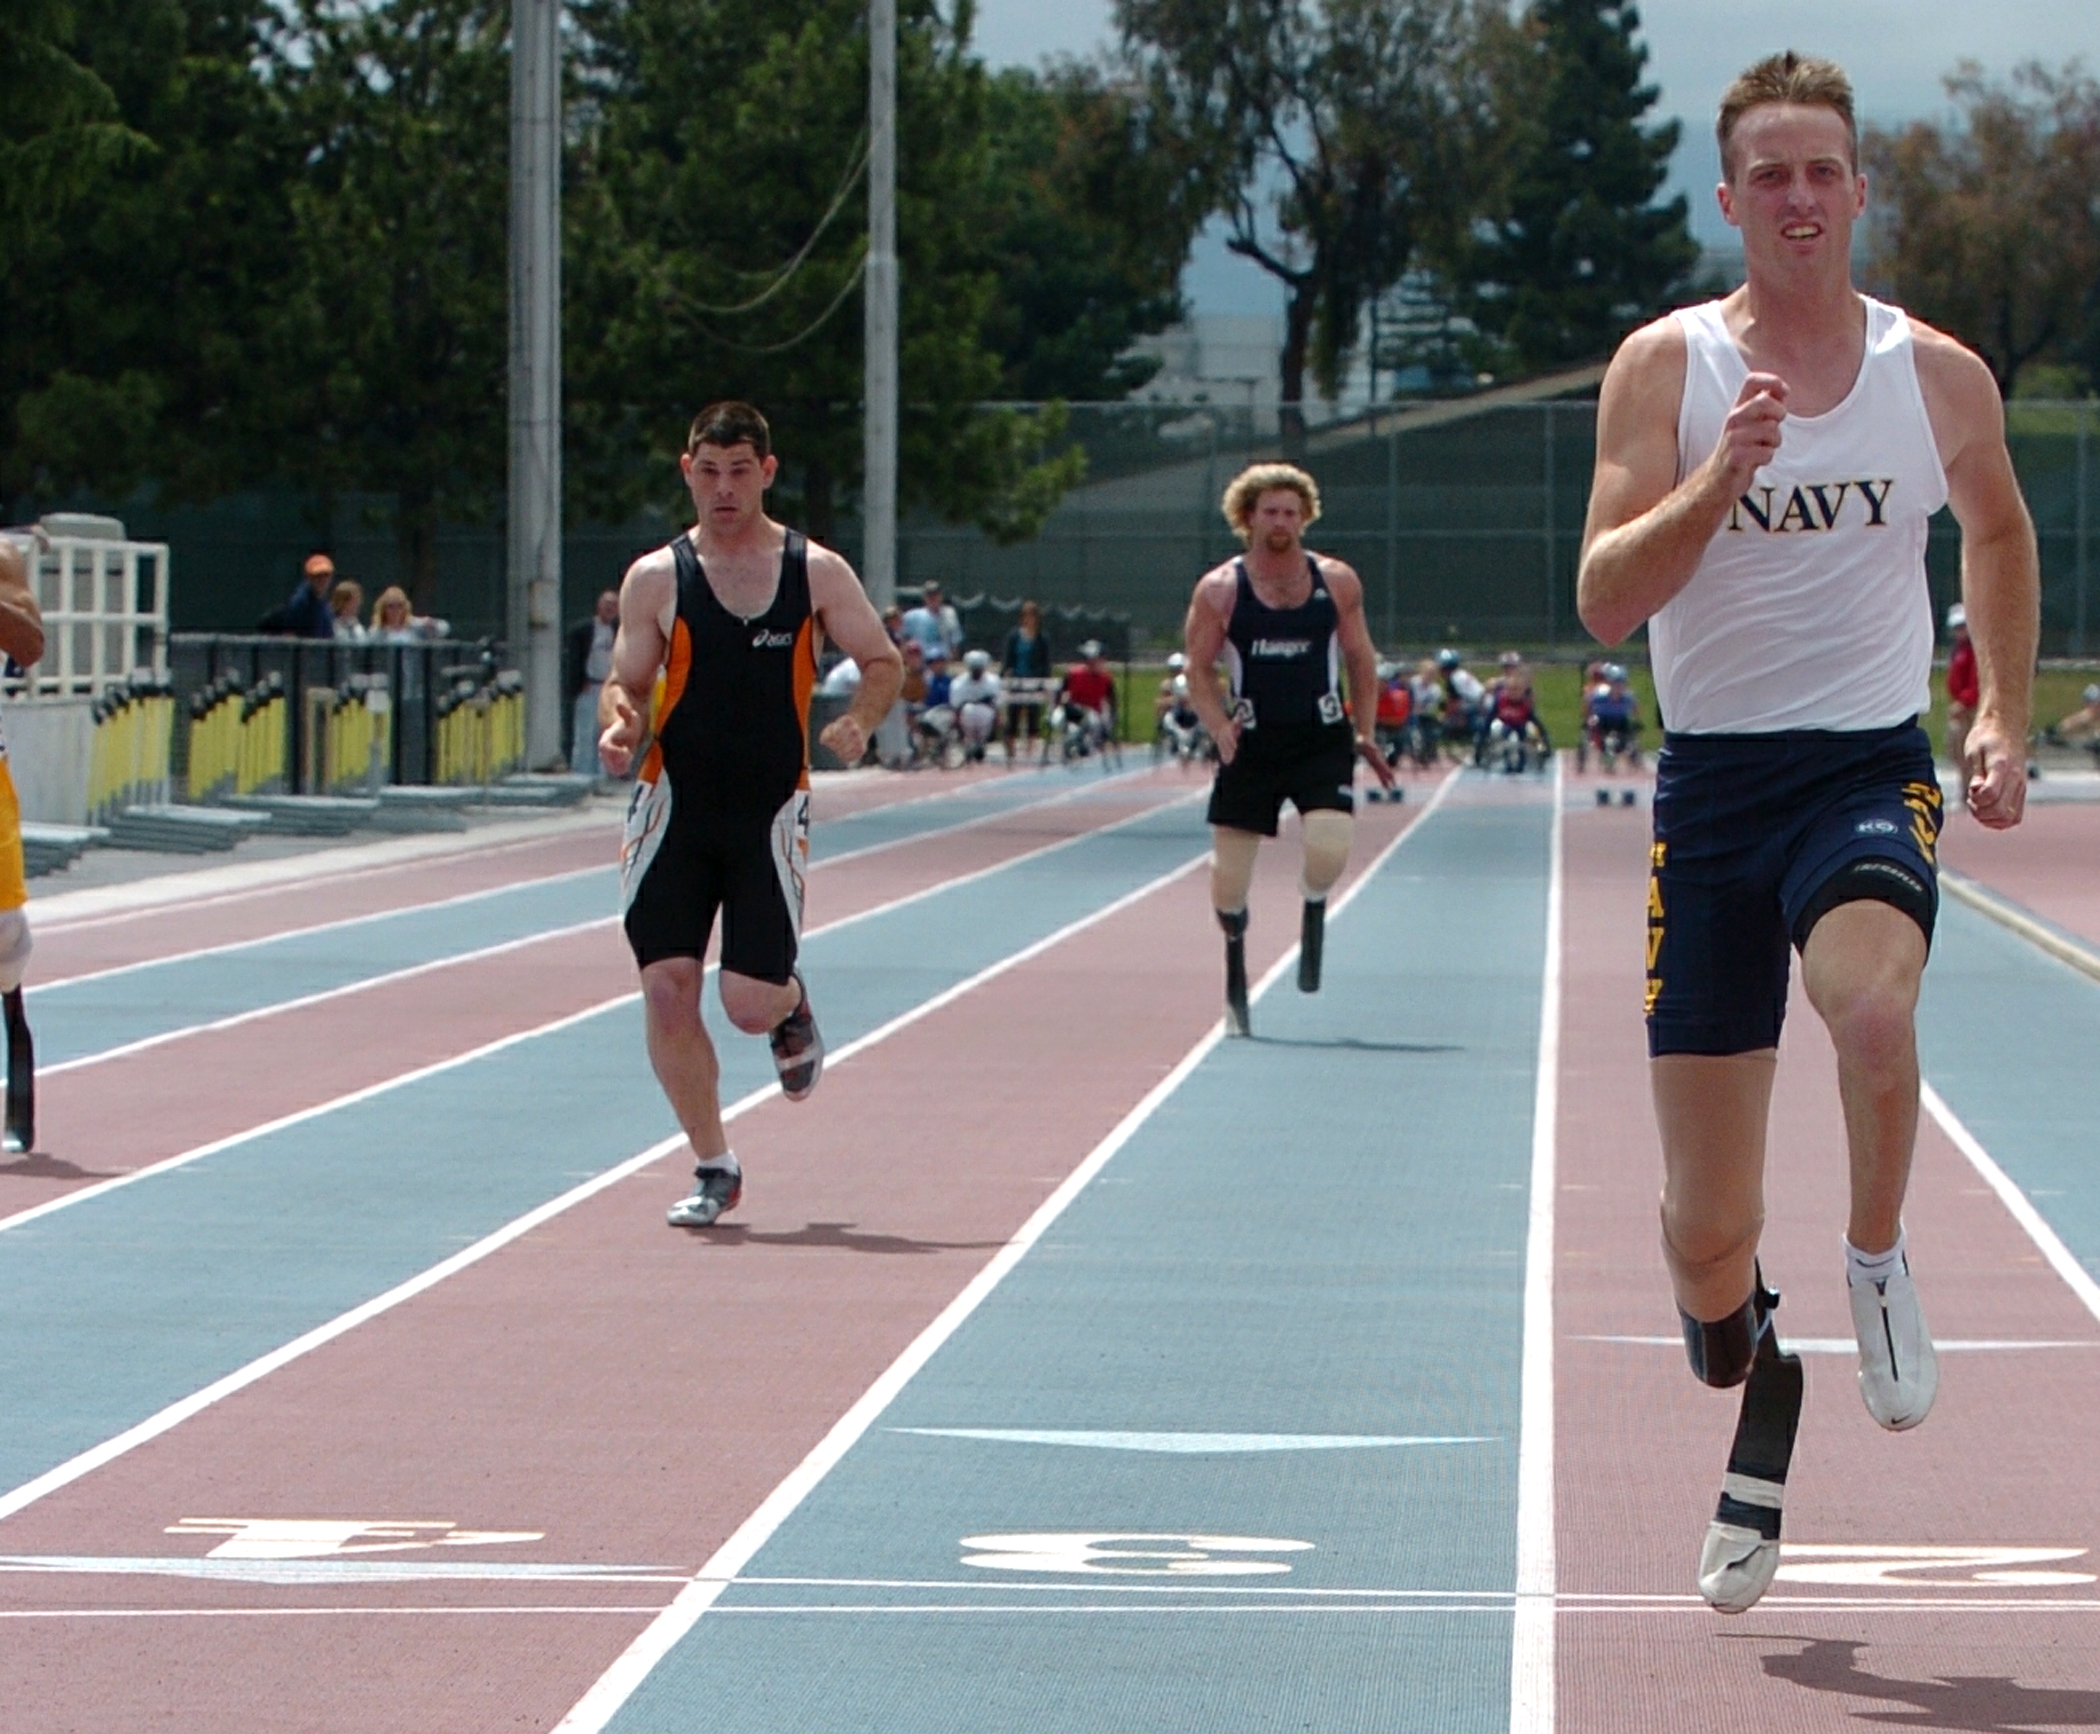 100 meter race while qualifying for the u s paralympics sprint team